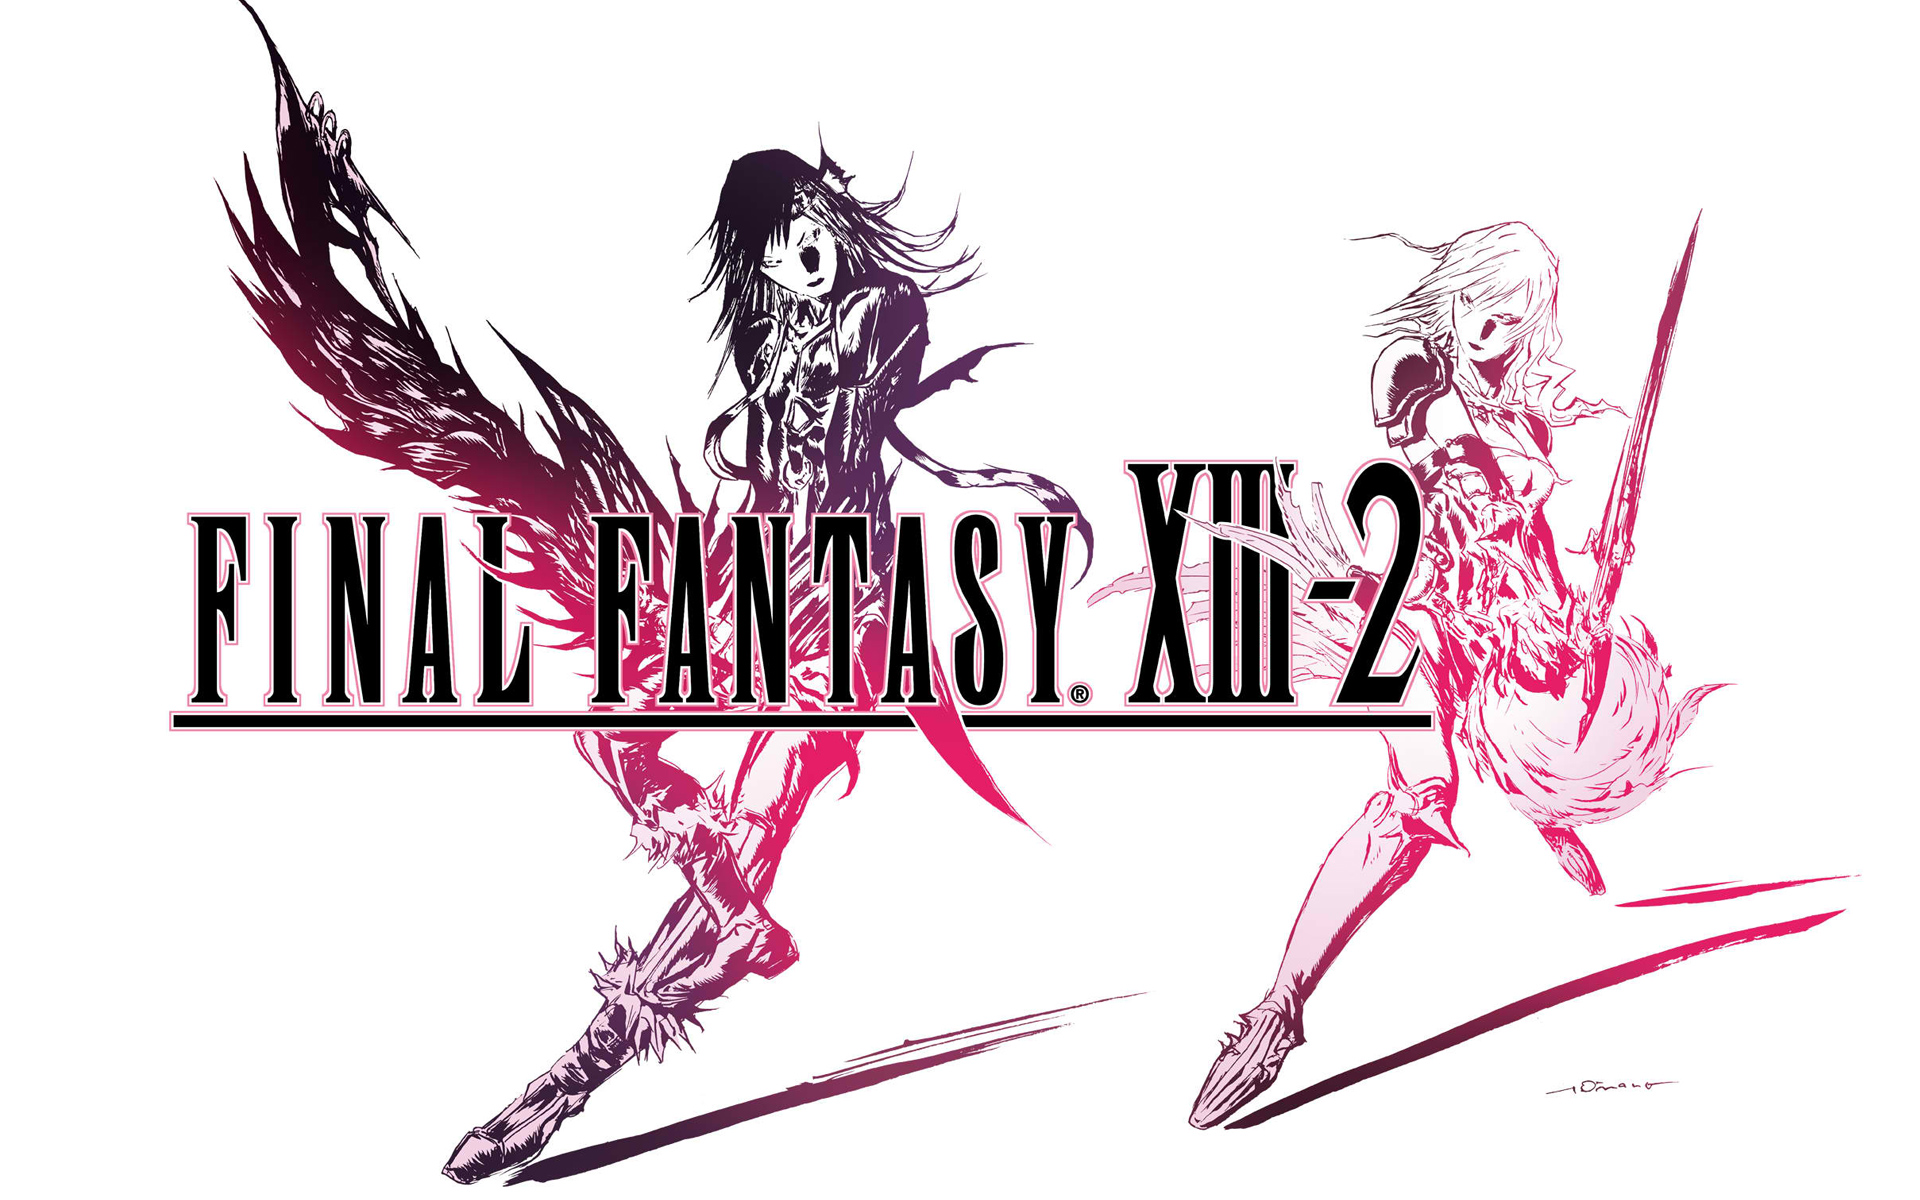 Final Fantasy XIII 2 388.21 Kb